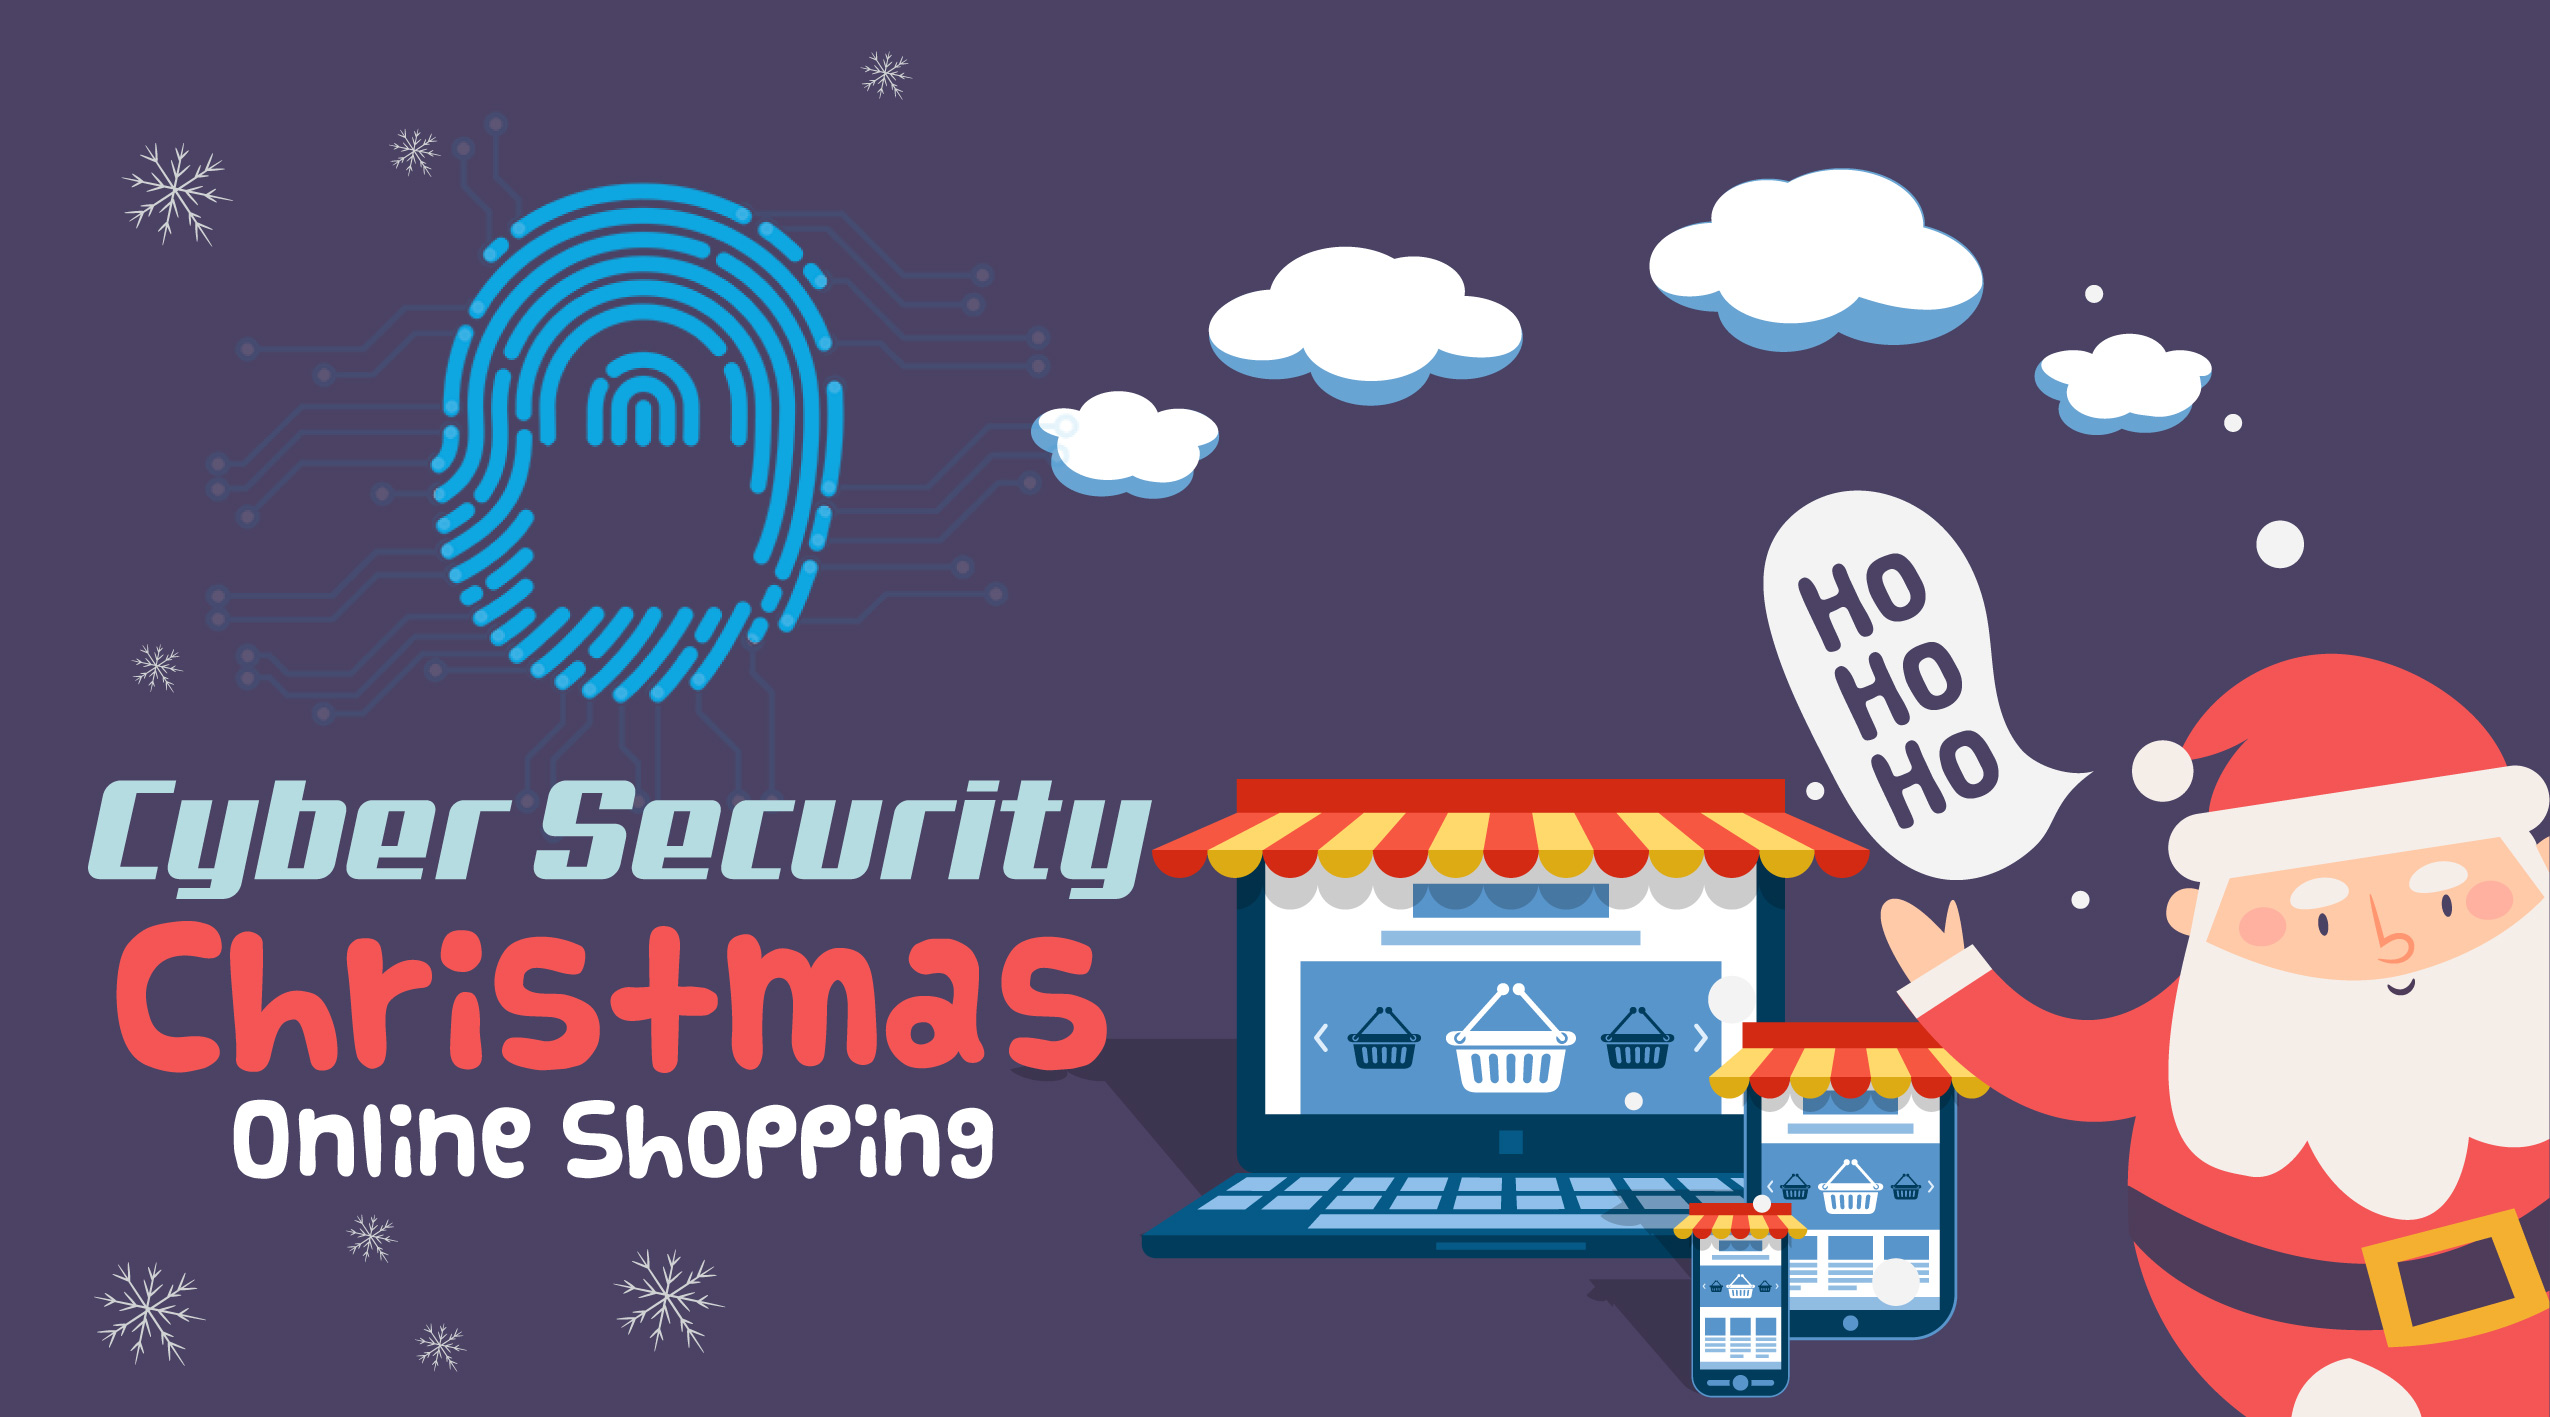 Cyber Security Shopping during the Holiday Season in Fishers, Wetfield and Indianpolis